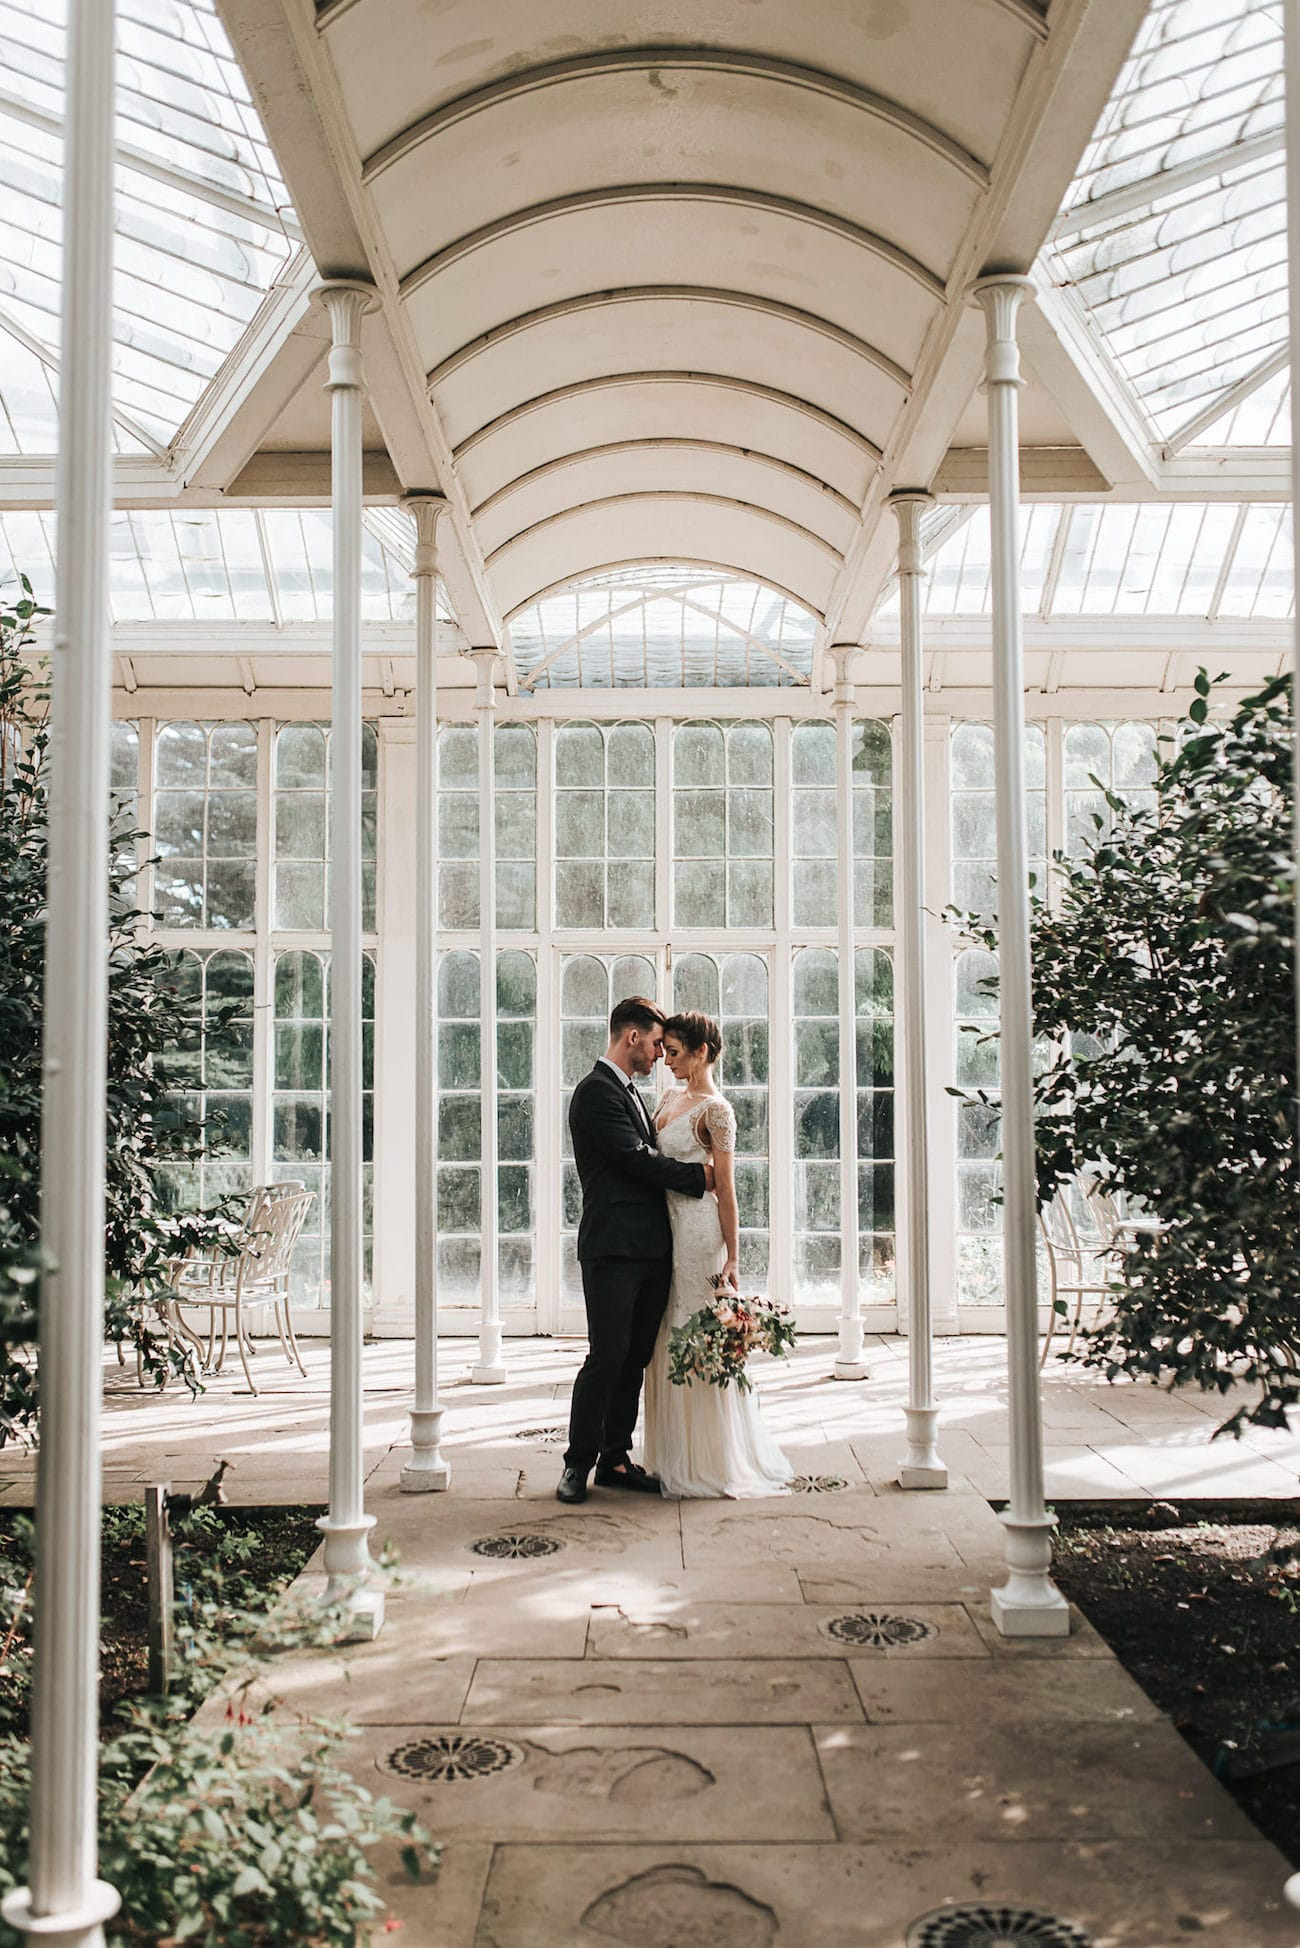 Glasshouse Wedding Inspiration | Image: Pear & Bear Photography